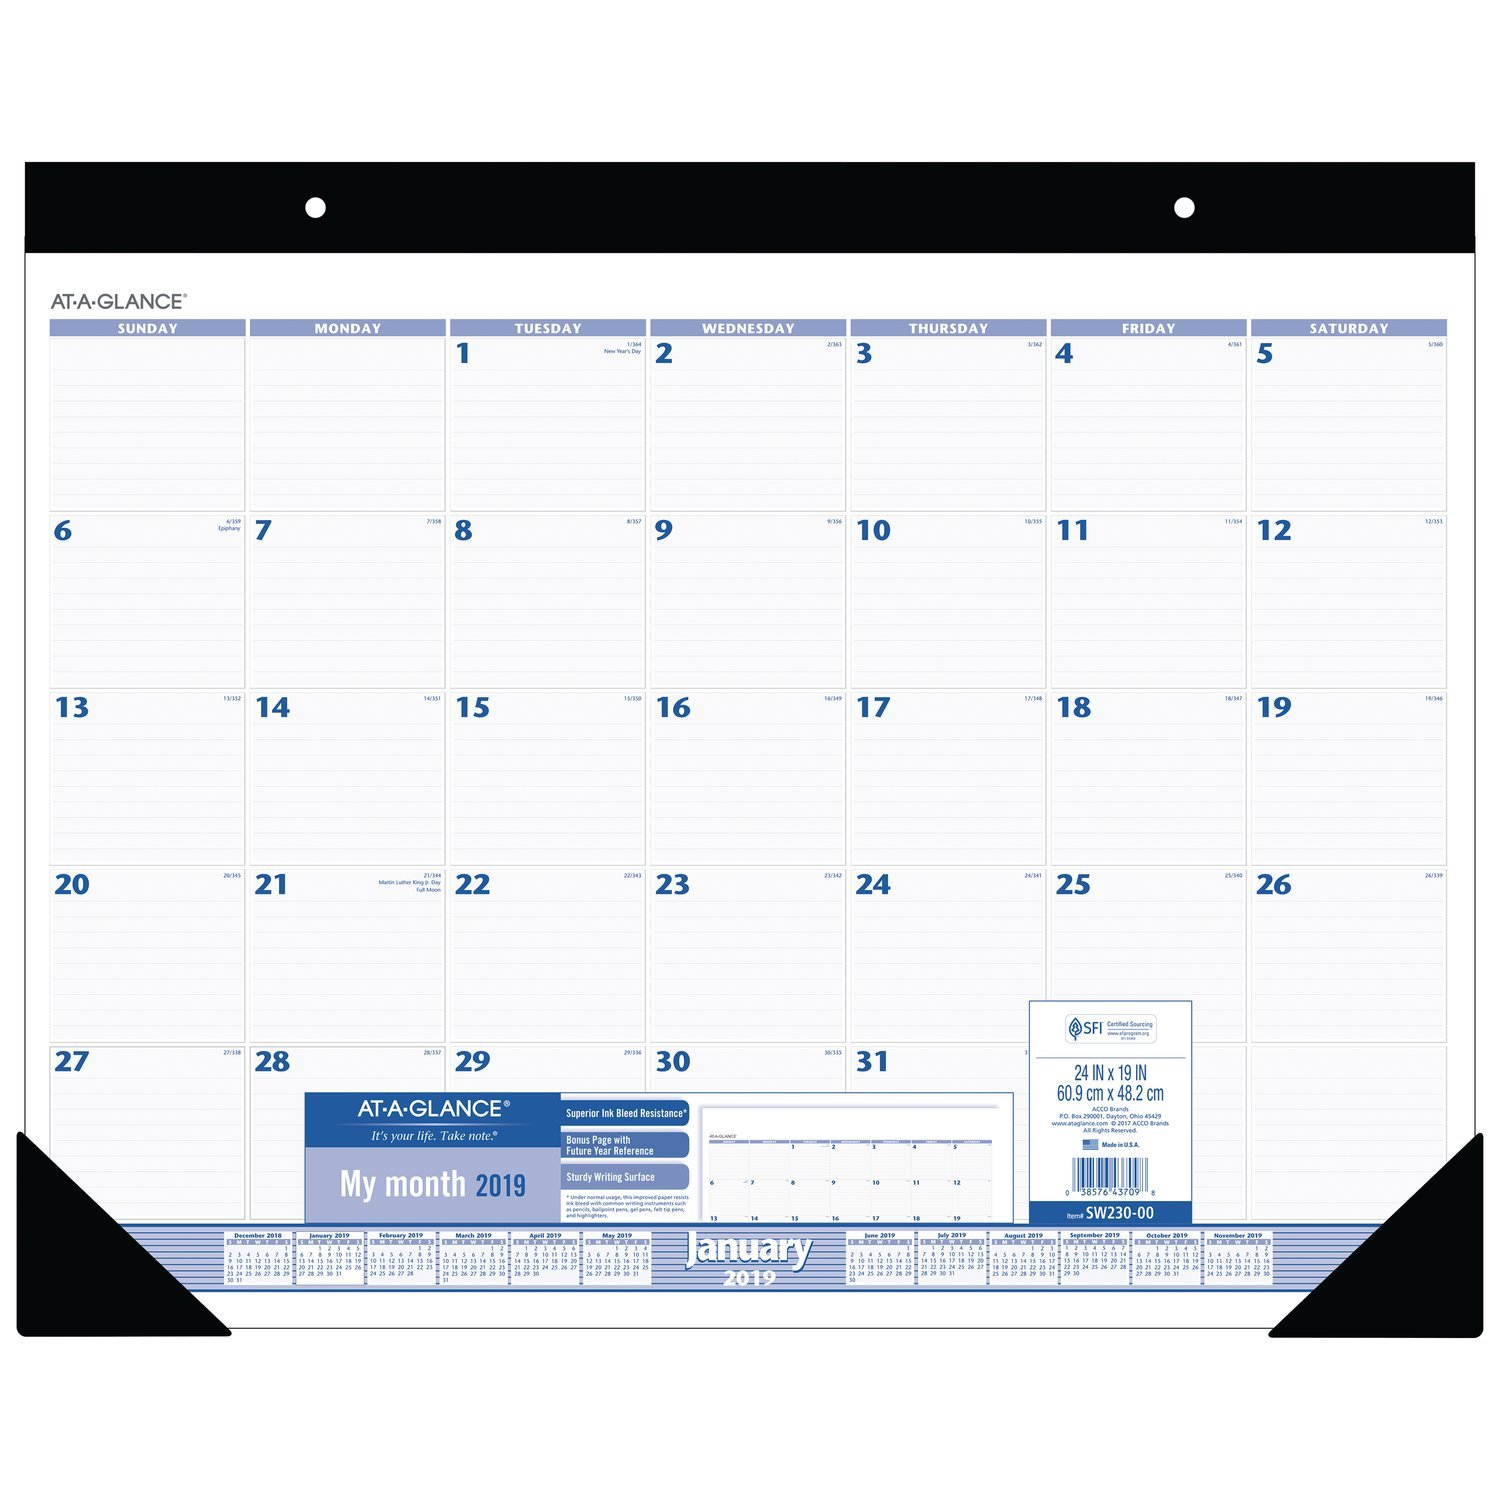 AT-A-GLANCE Monthly Desk Pad Calendar, January 2019 - December 2019, 24'' x 19'', Blue/Gray (SW23000)